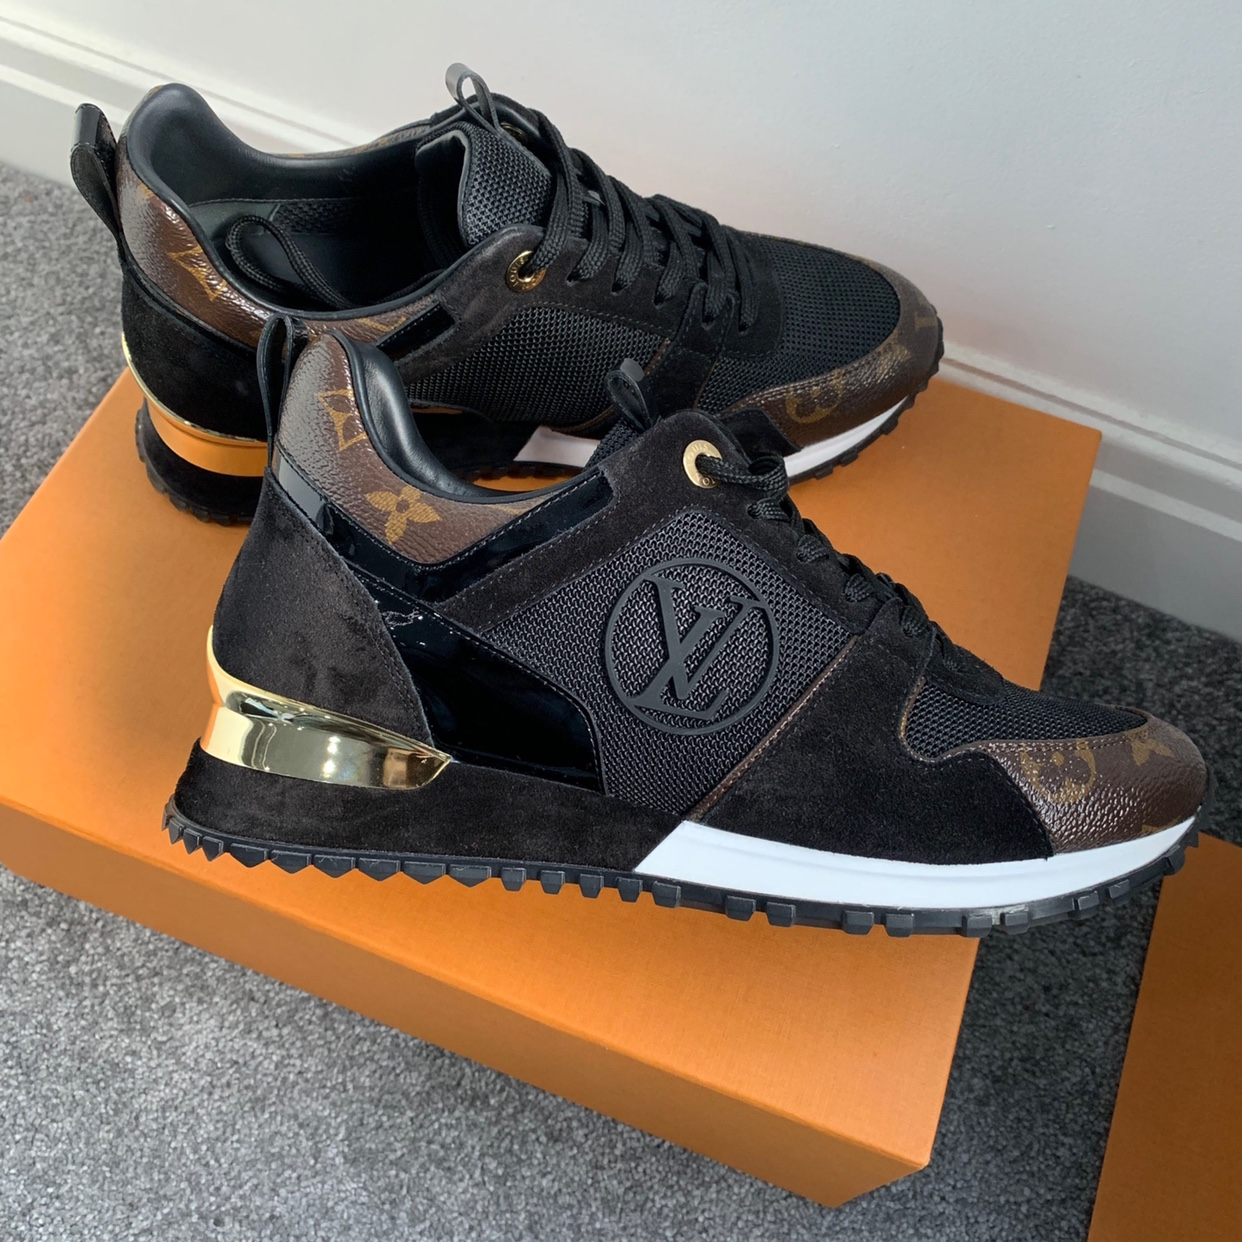 ed599b63 Women's Louis Vuitton Runaway Trainers, absolutely... - Depop